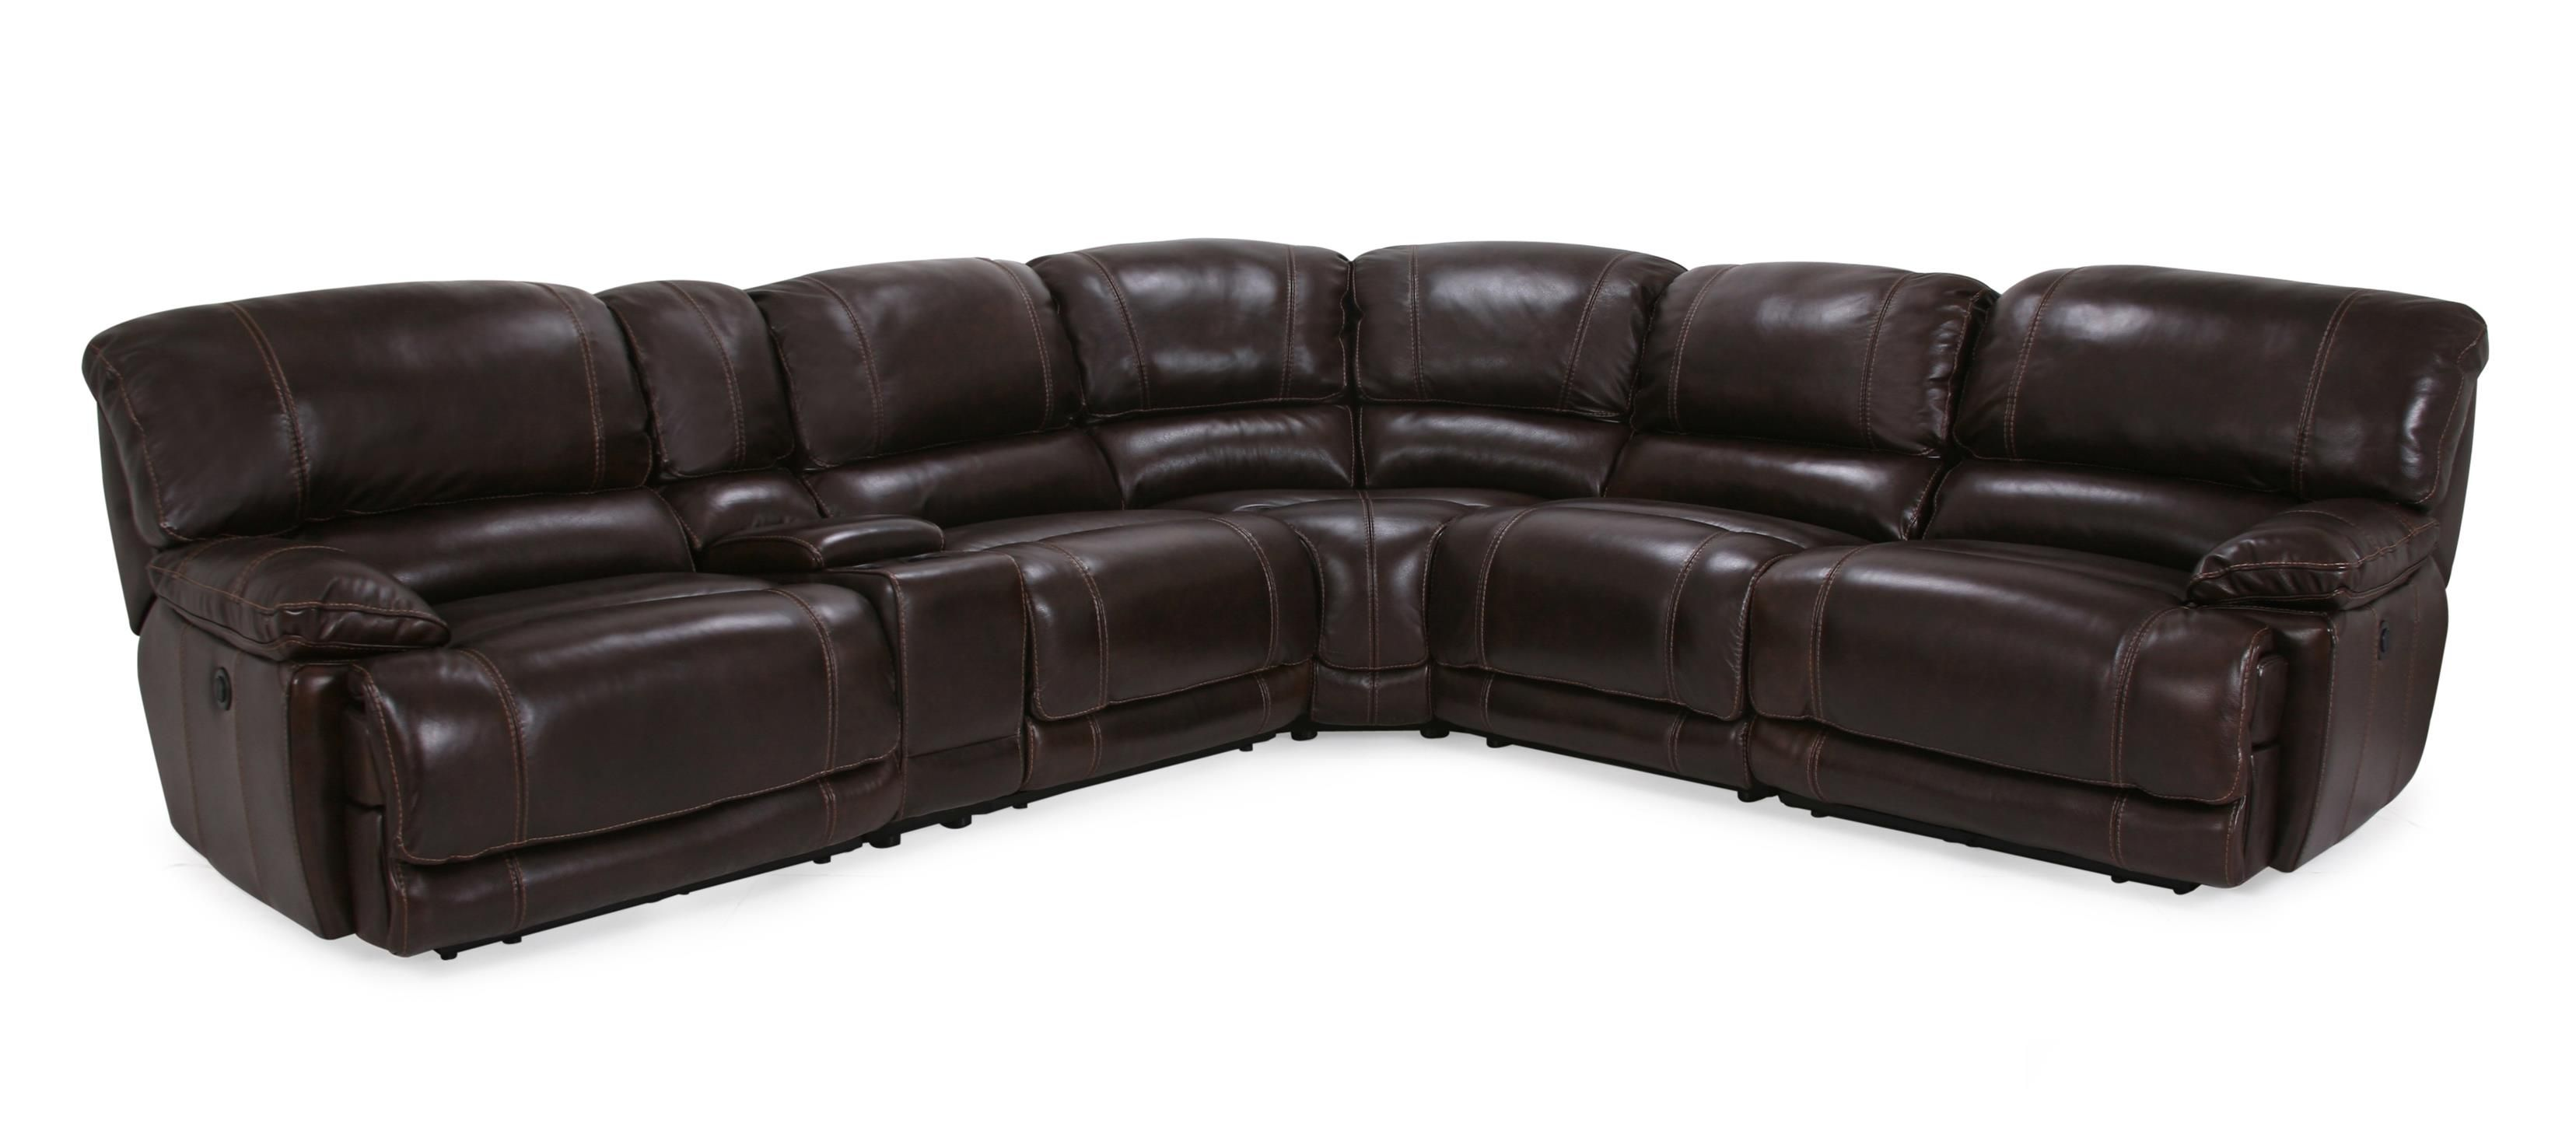 For The Cheers Sofa Casual Reclining Sectional At Conlin S Furniture Your Montana North Dakota South Minnesota And Wyoming